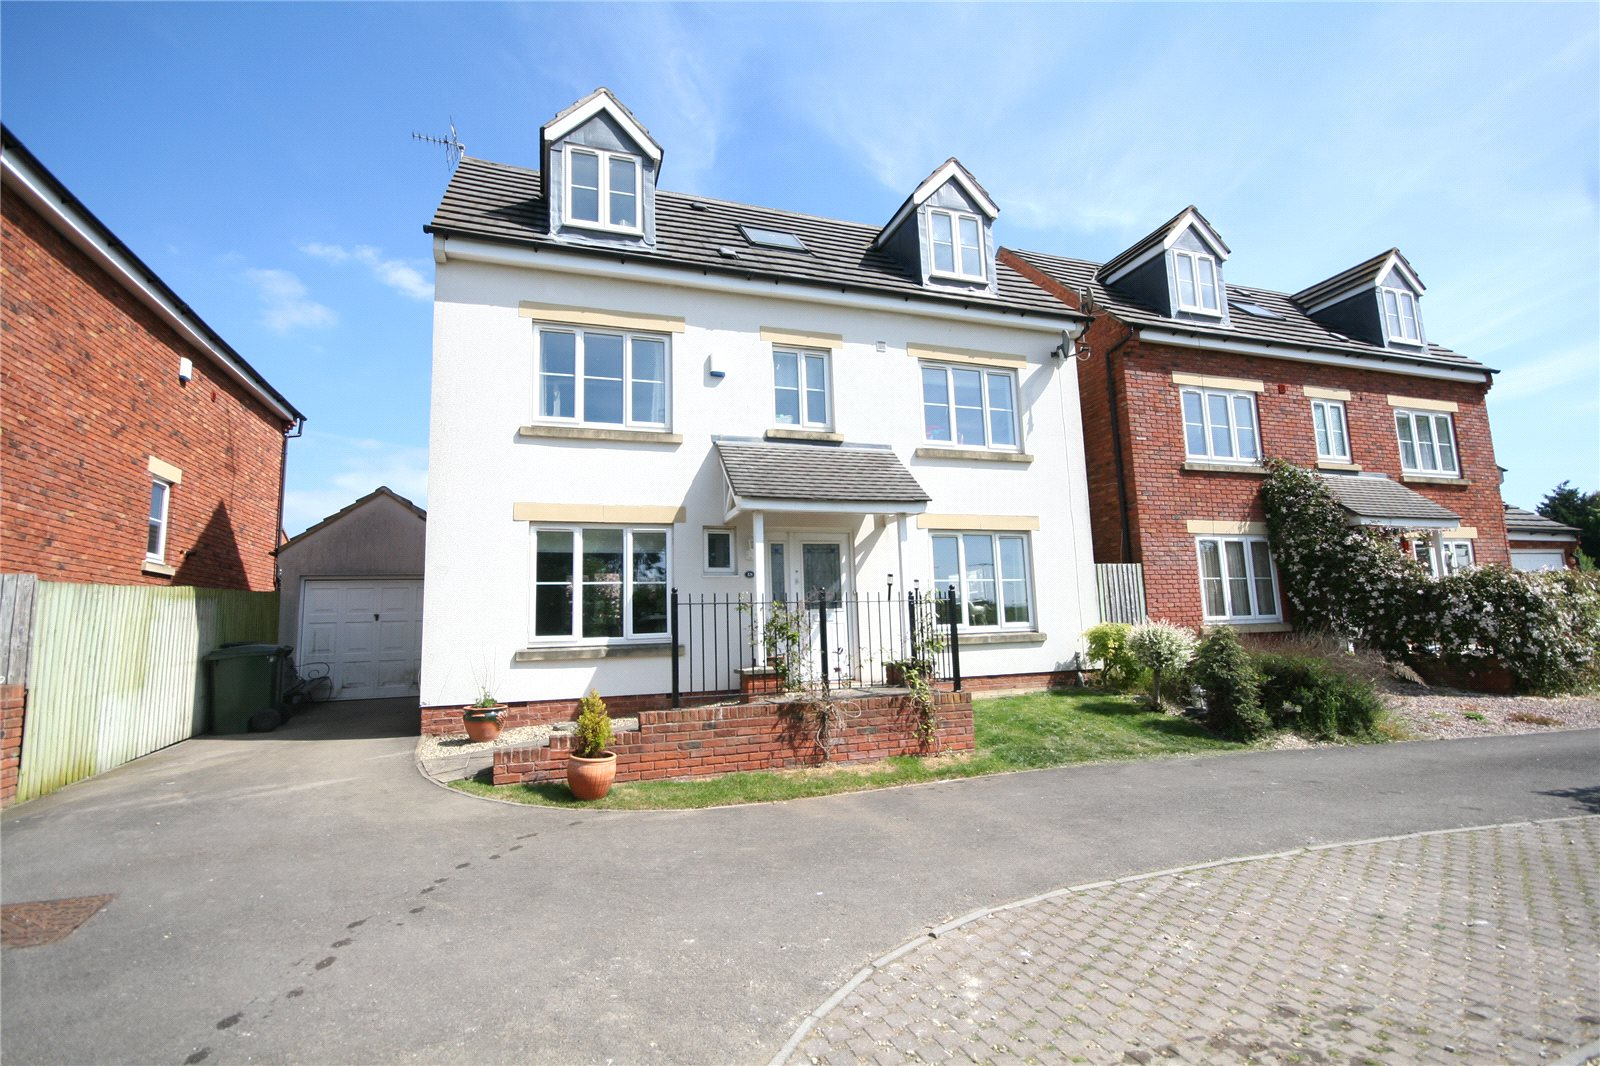 5 Bedrooms Detached House for sale in Newland View Cheltenham GL51